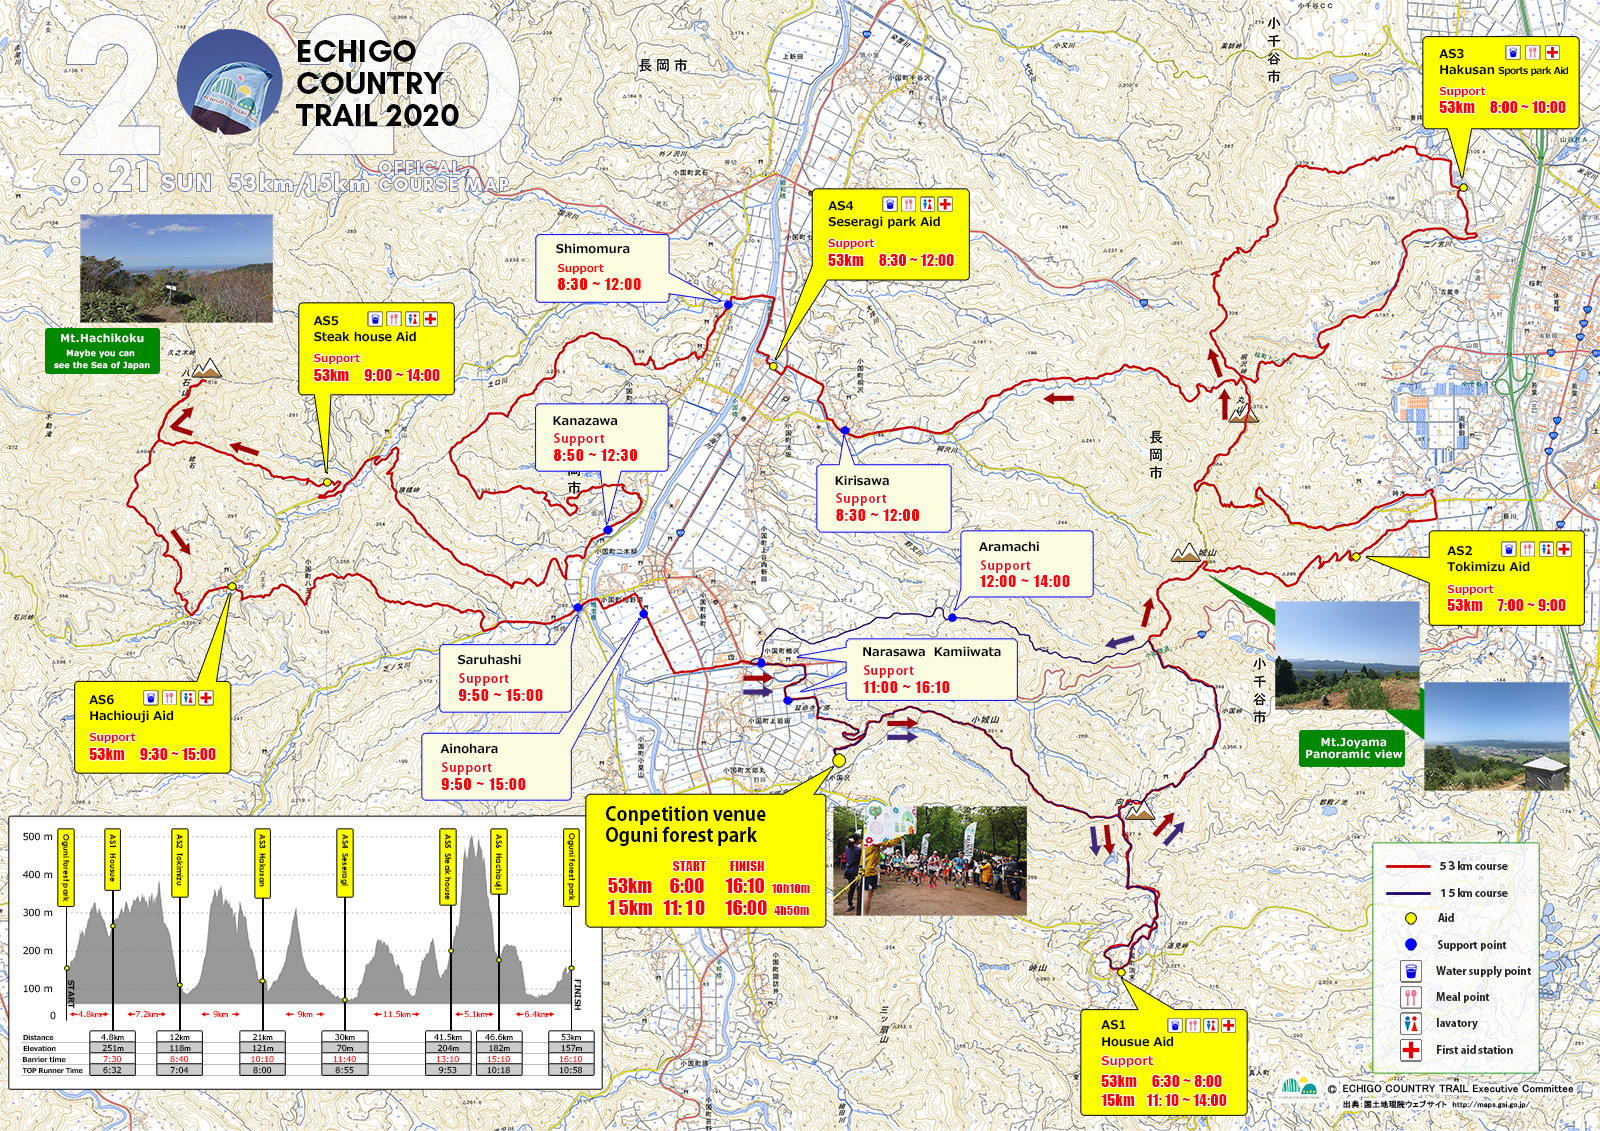 53km course map